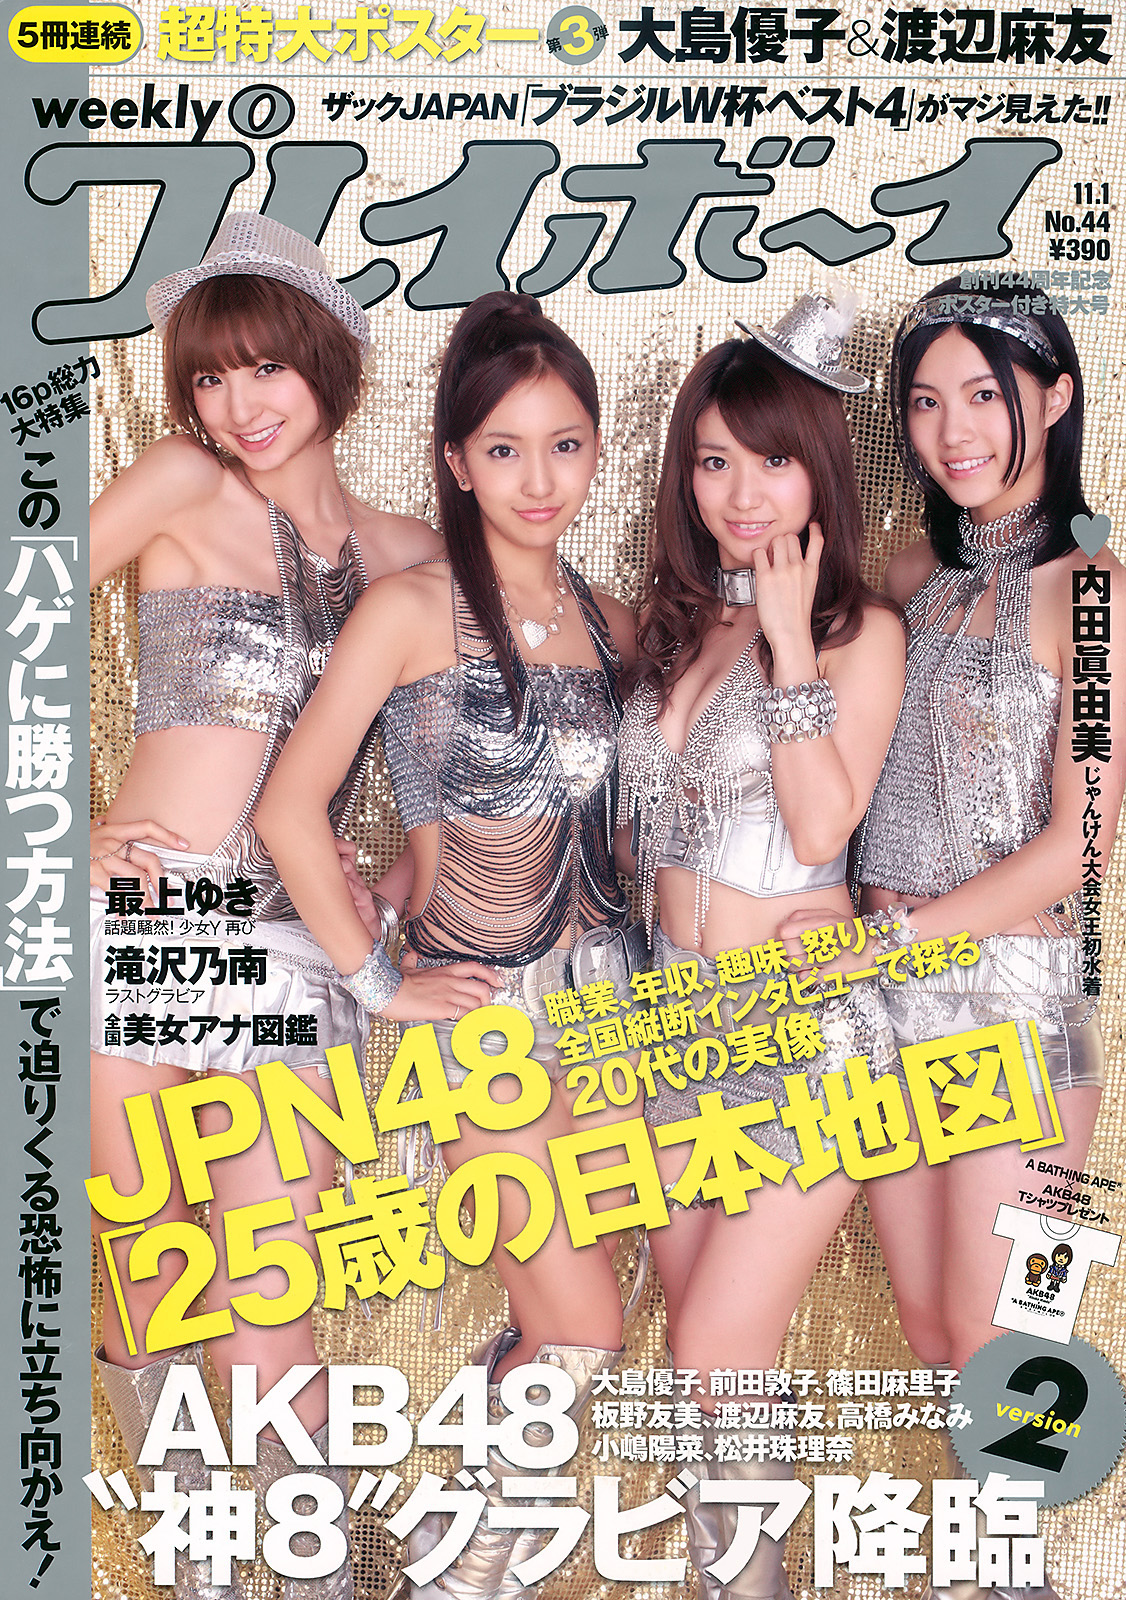 Weekly Playboy 2010 No.44 (AKB48) 01-jpg